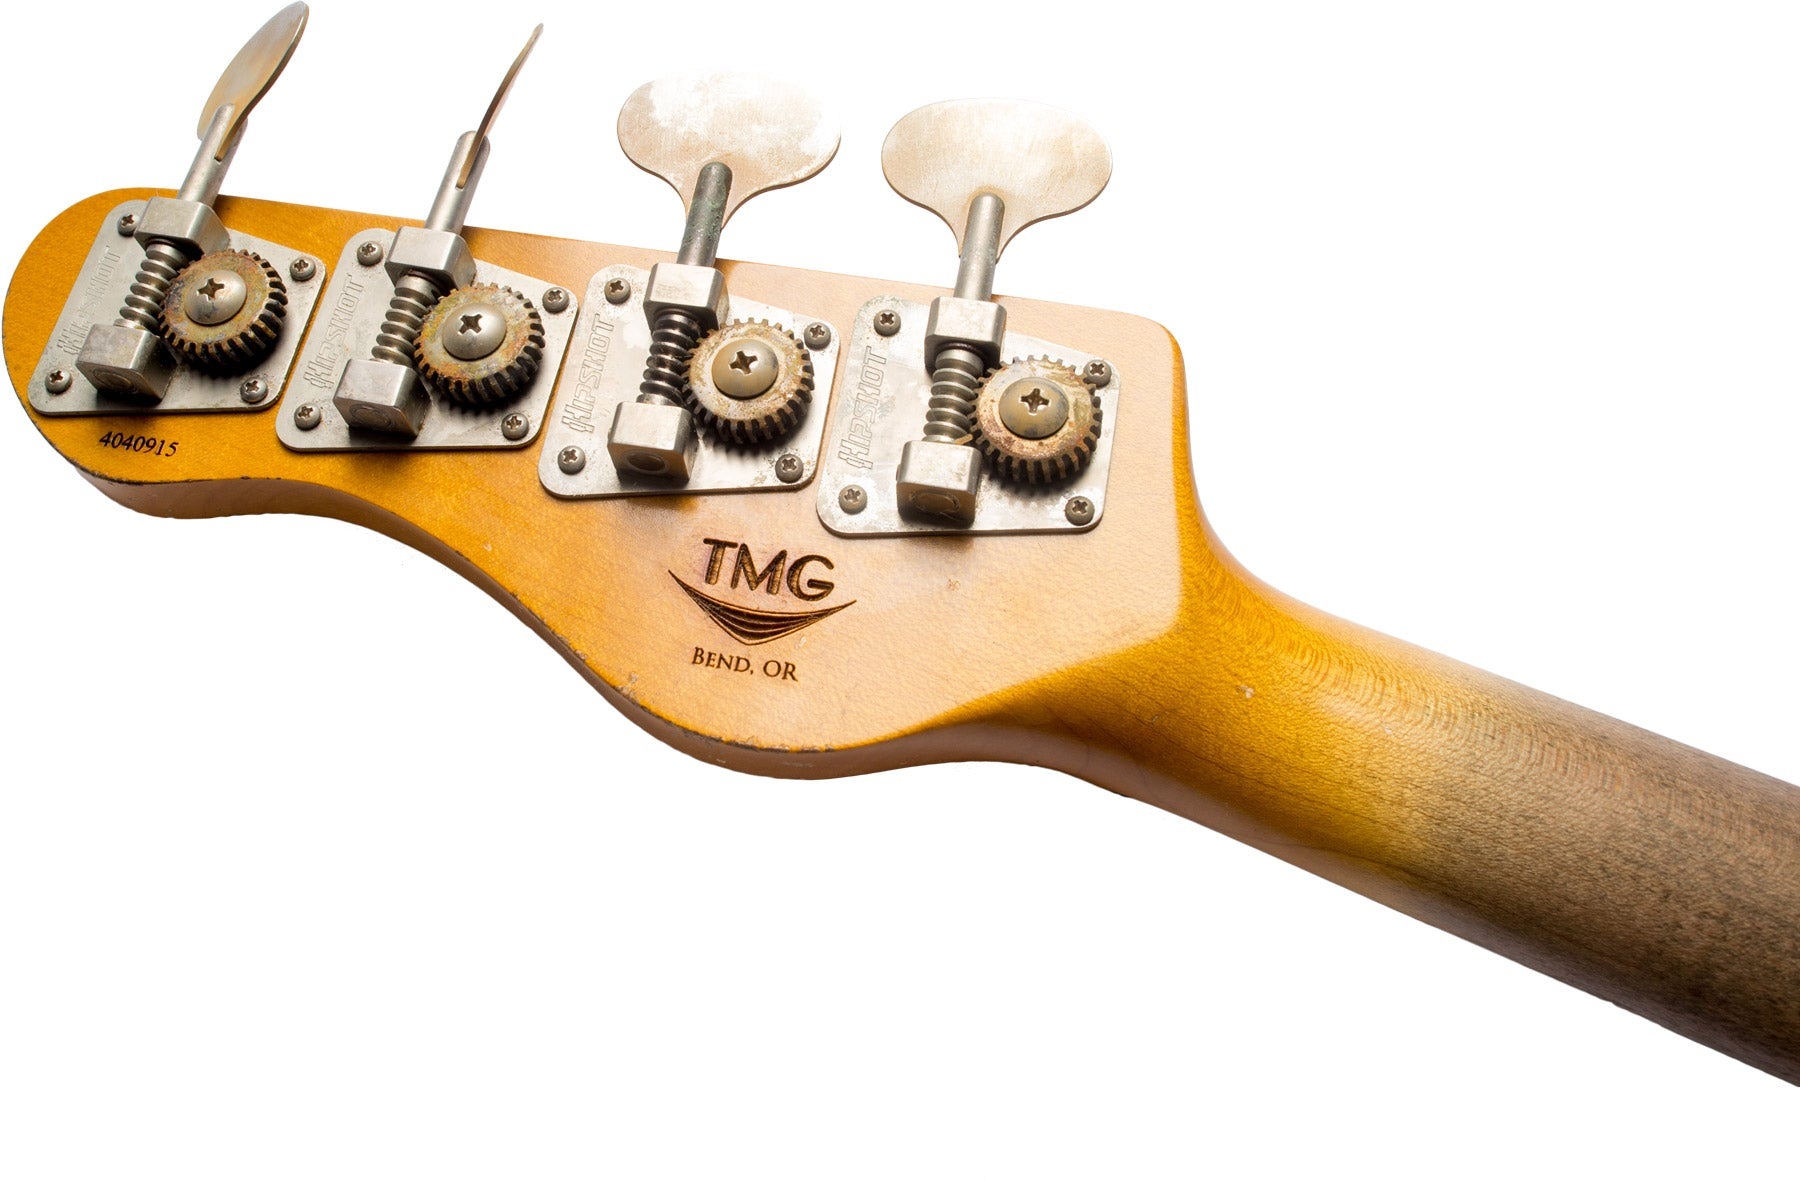 TMG Stetson Neck and Headstock